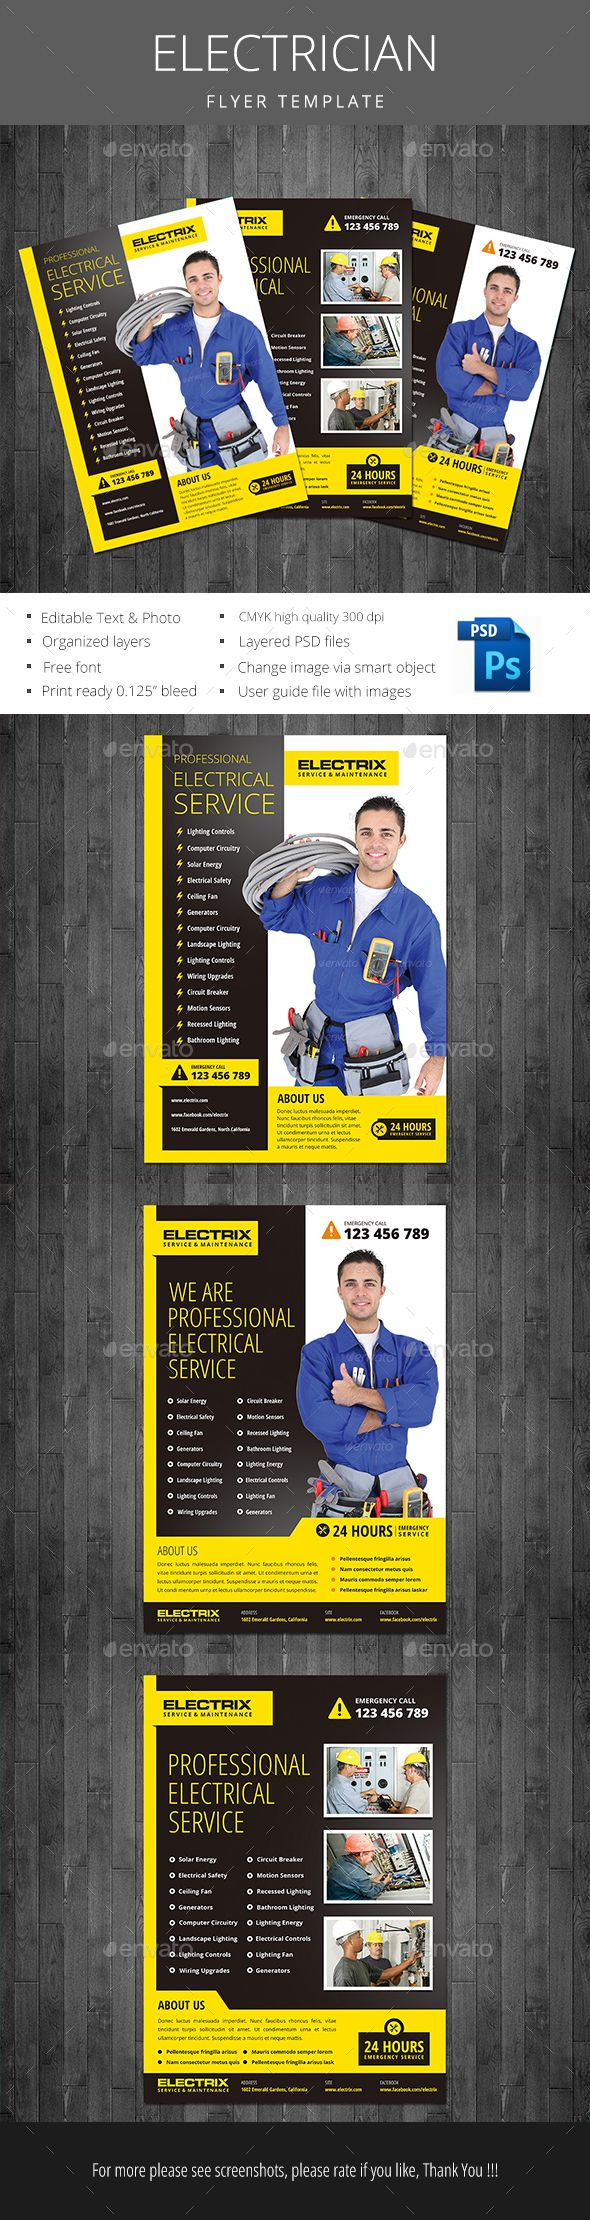 Download Free Graphicriver Electrician Flyer #a4